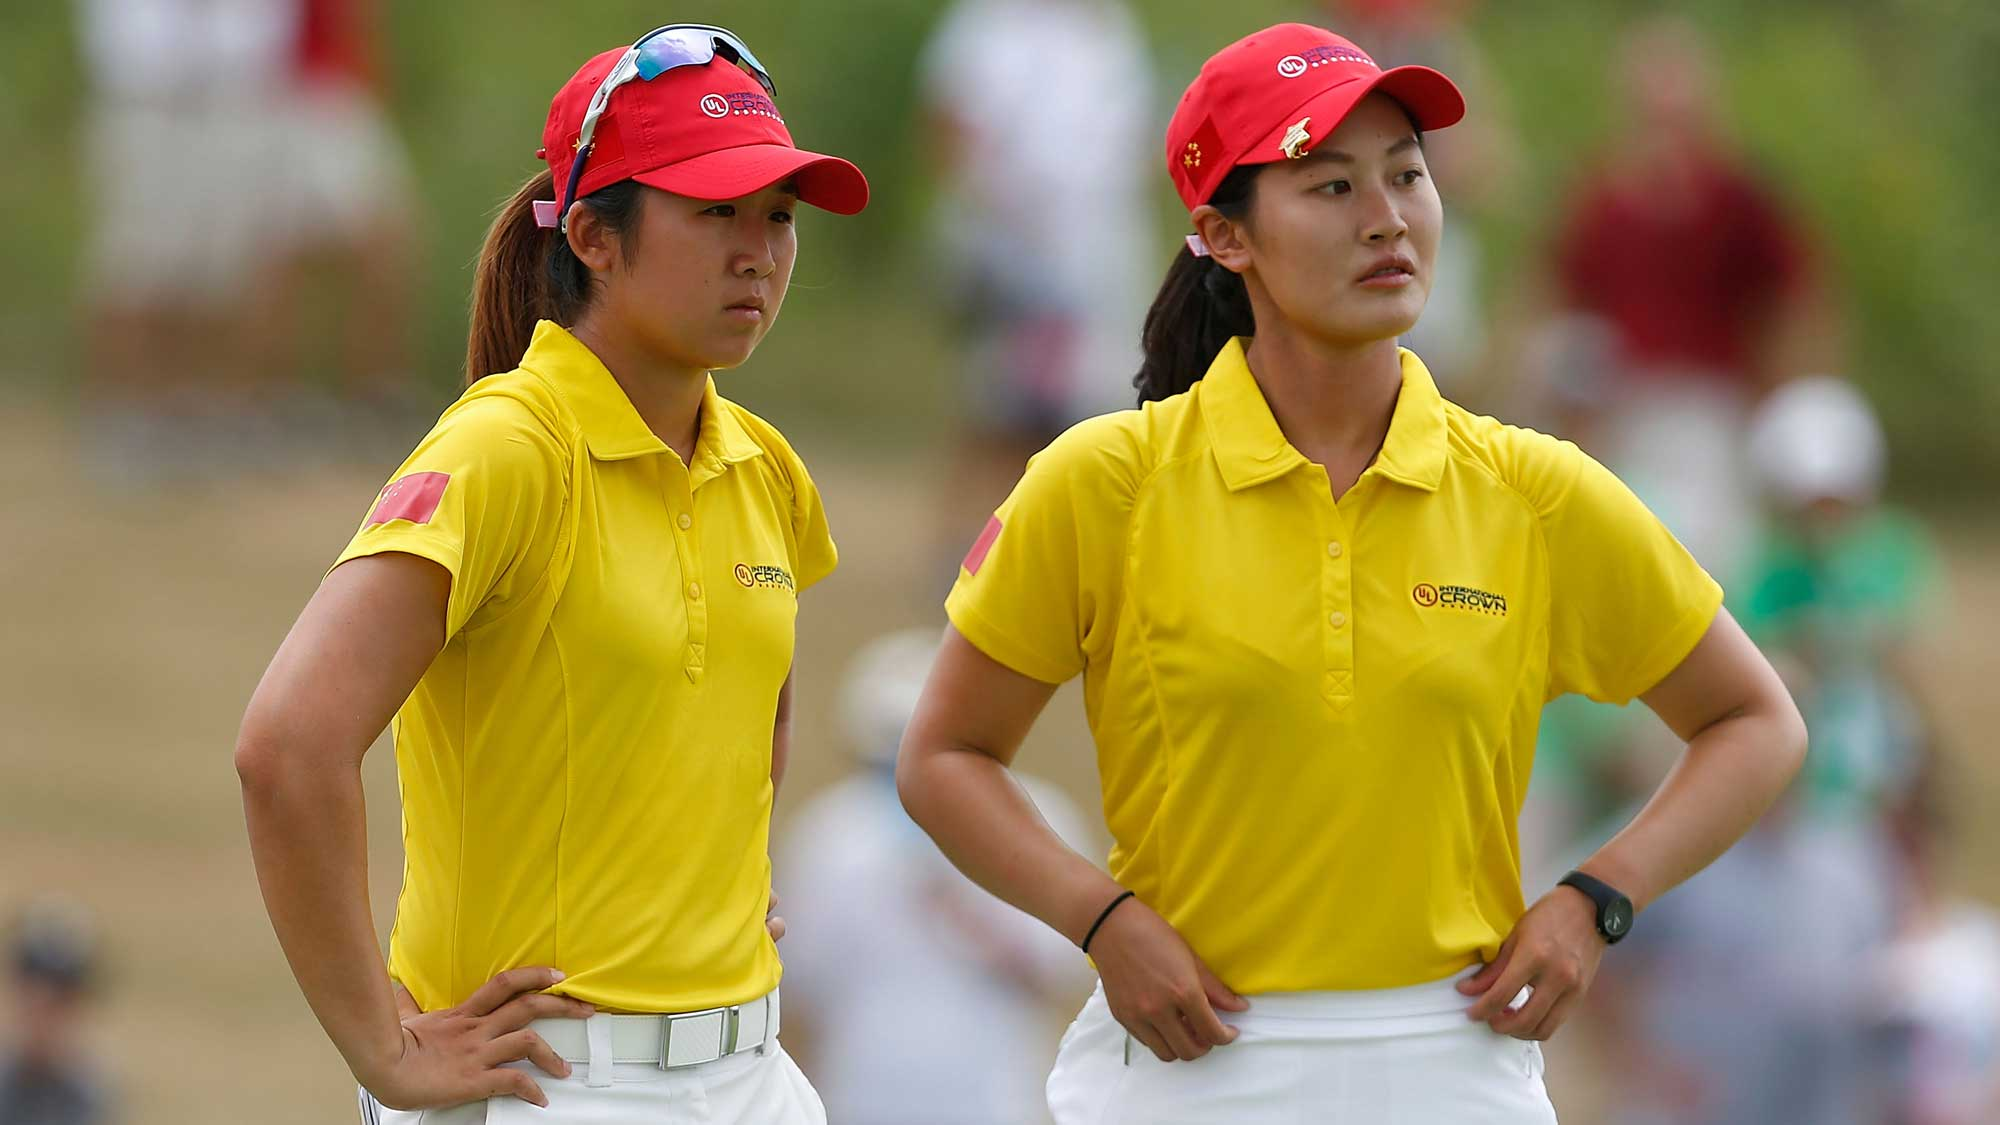 (L) Jing Yan and (R) Xi Yu Lin of China wait on the third green during the four-ball session of the 2016 UL International Crown